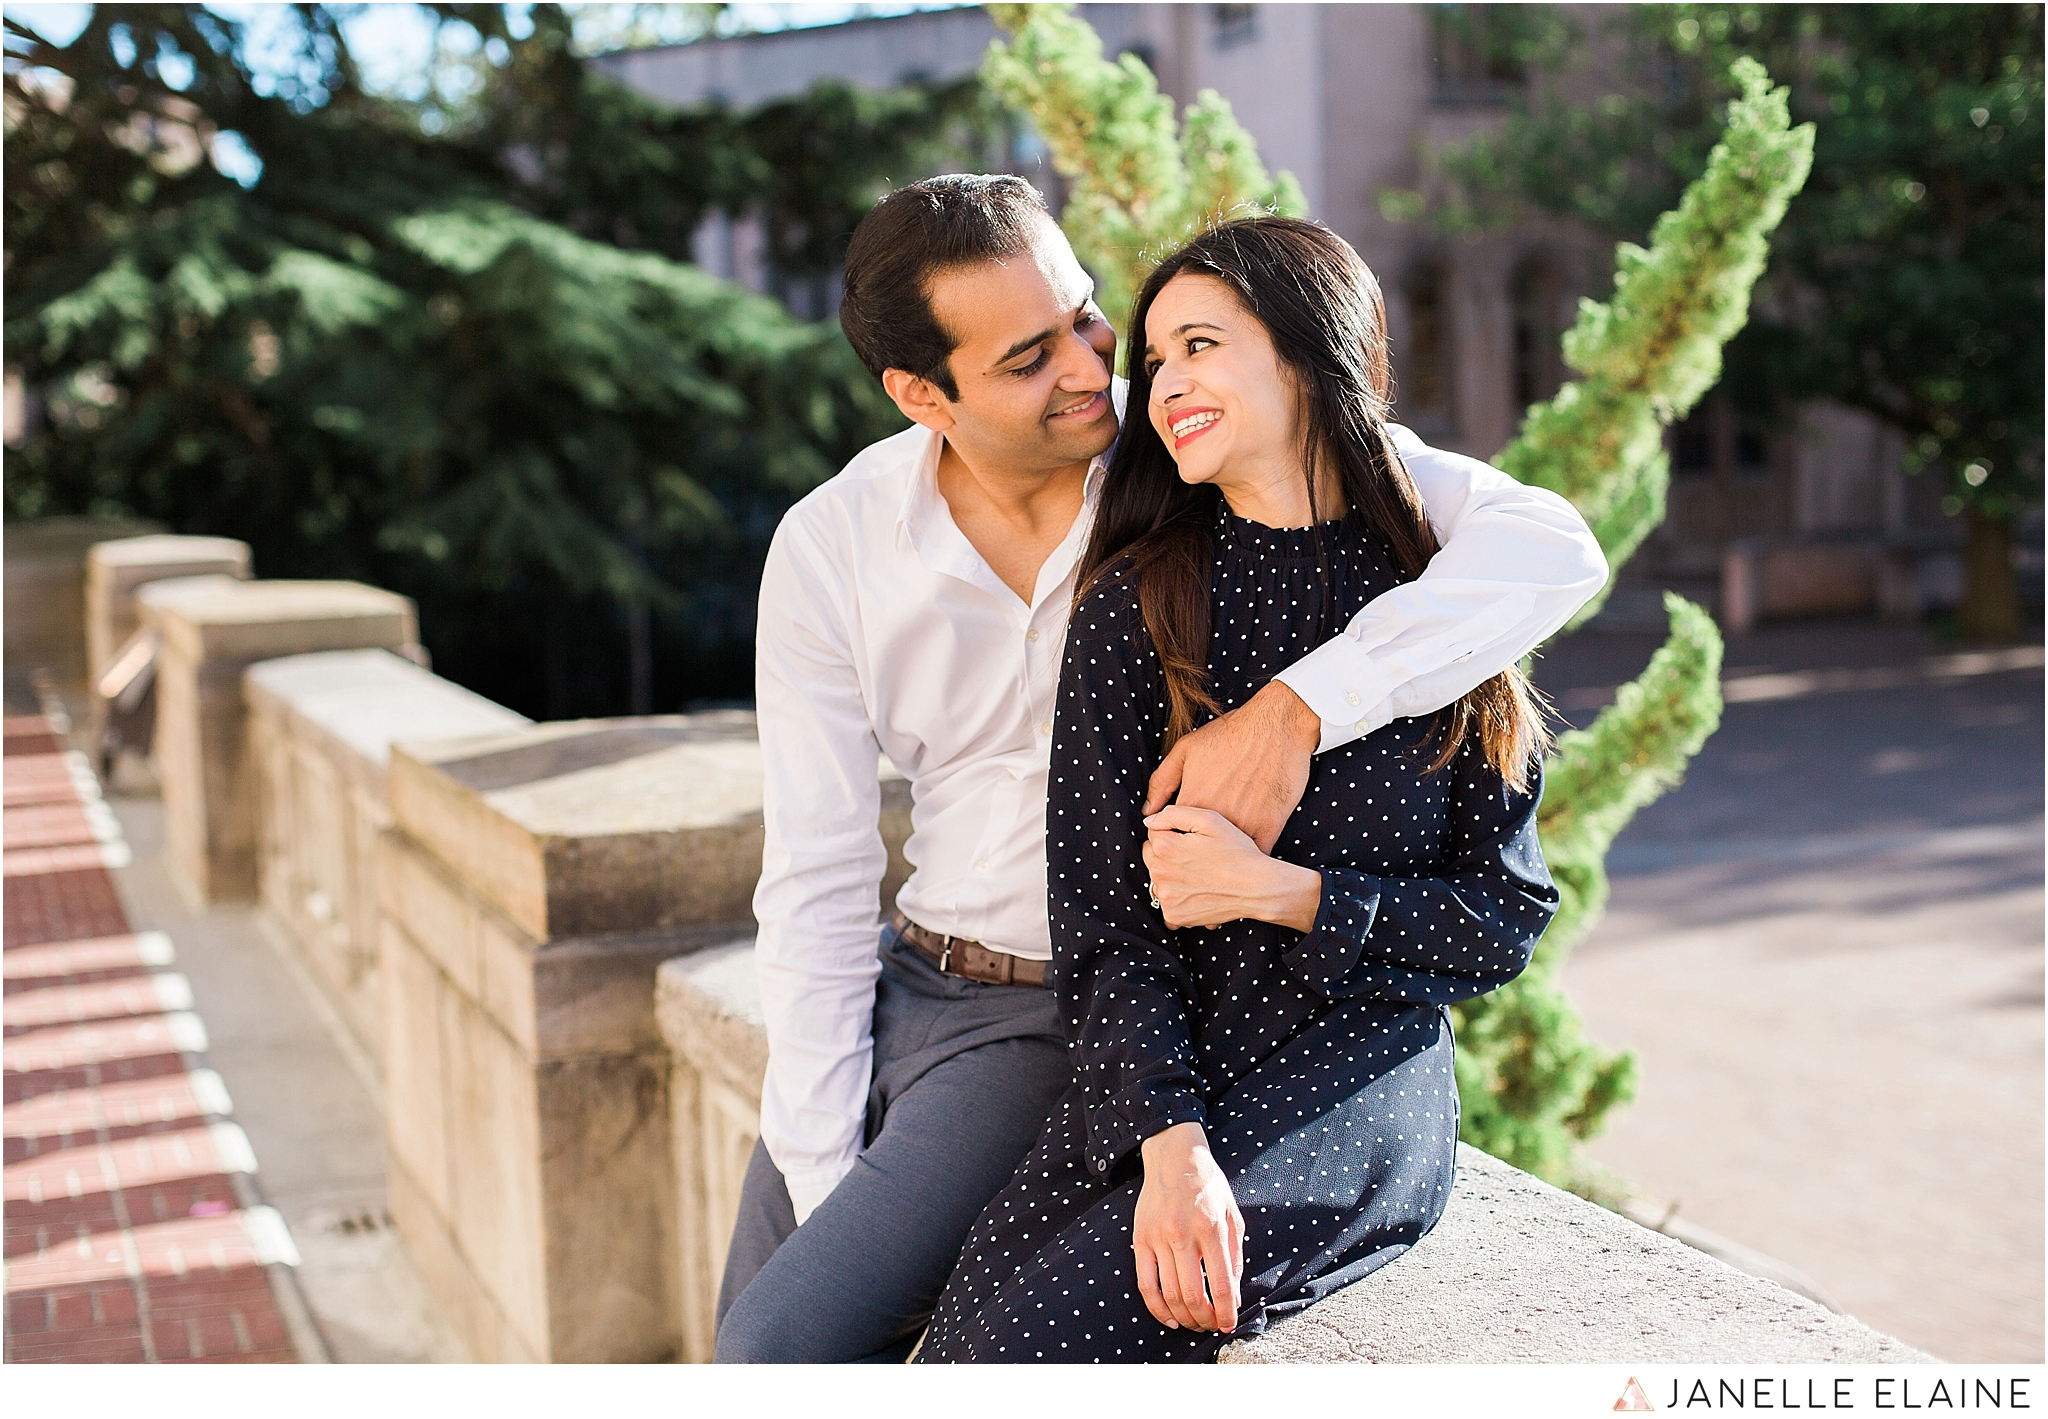 janelle elaine photography-zain and umema-seattle-uw-red square-engagement-photographer-157.jpg